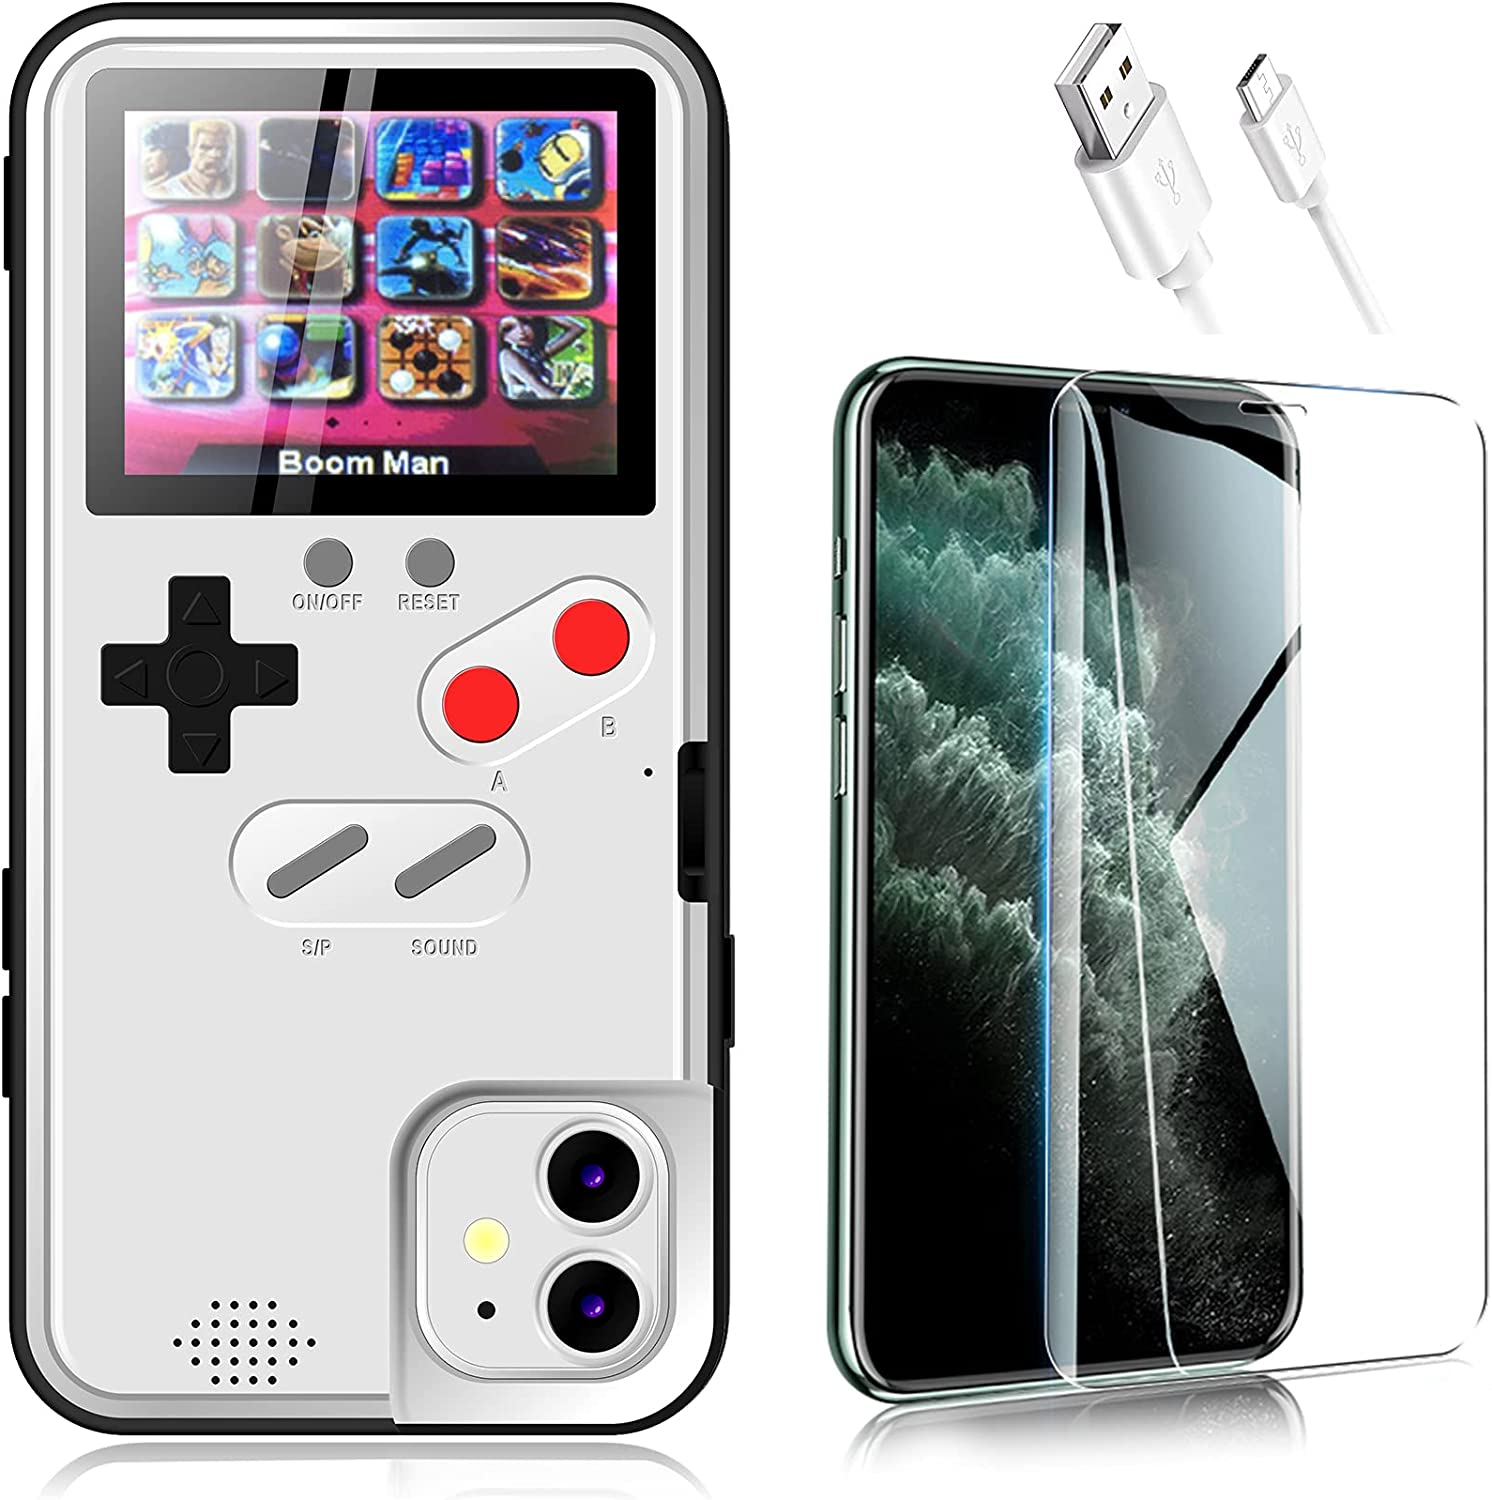 Gameboy Phone Case for iPhone 11 with Tempered Glass Phone Screen Protector,Full Color Display 36 Retro Classic Game, Protective Cover Self-Powered, Video Game Case (for iPhone 11, White)